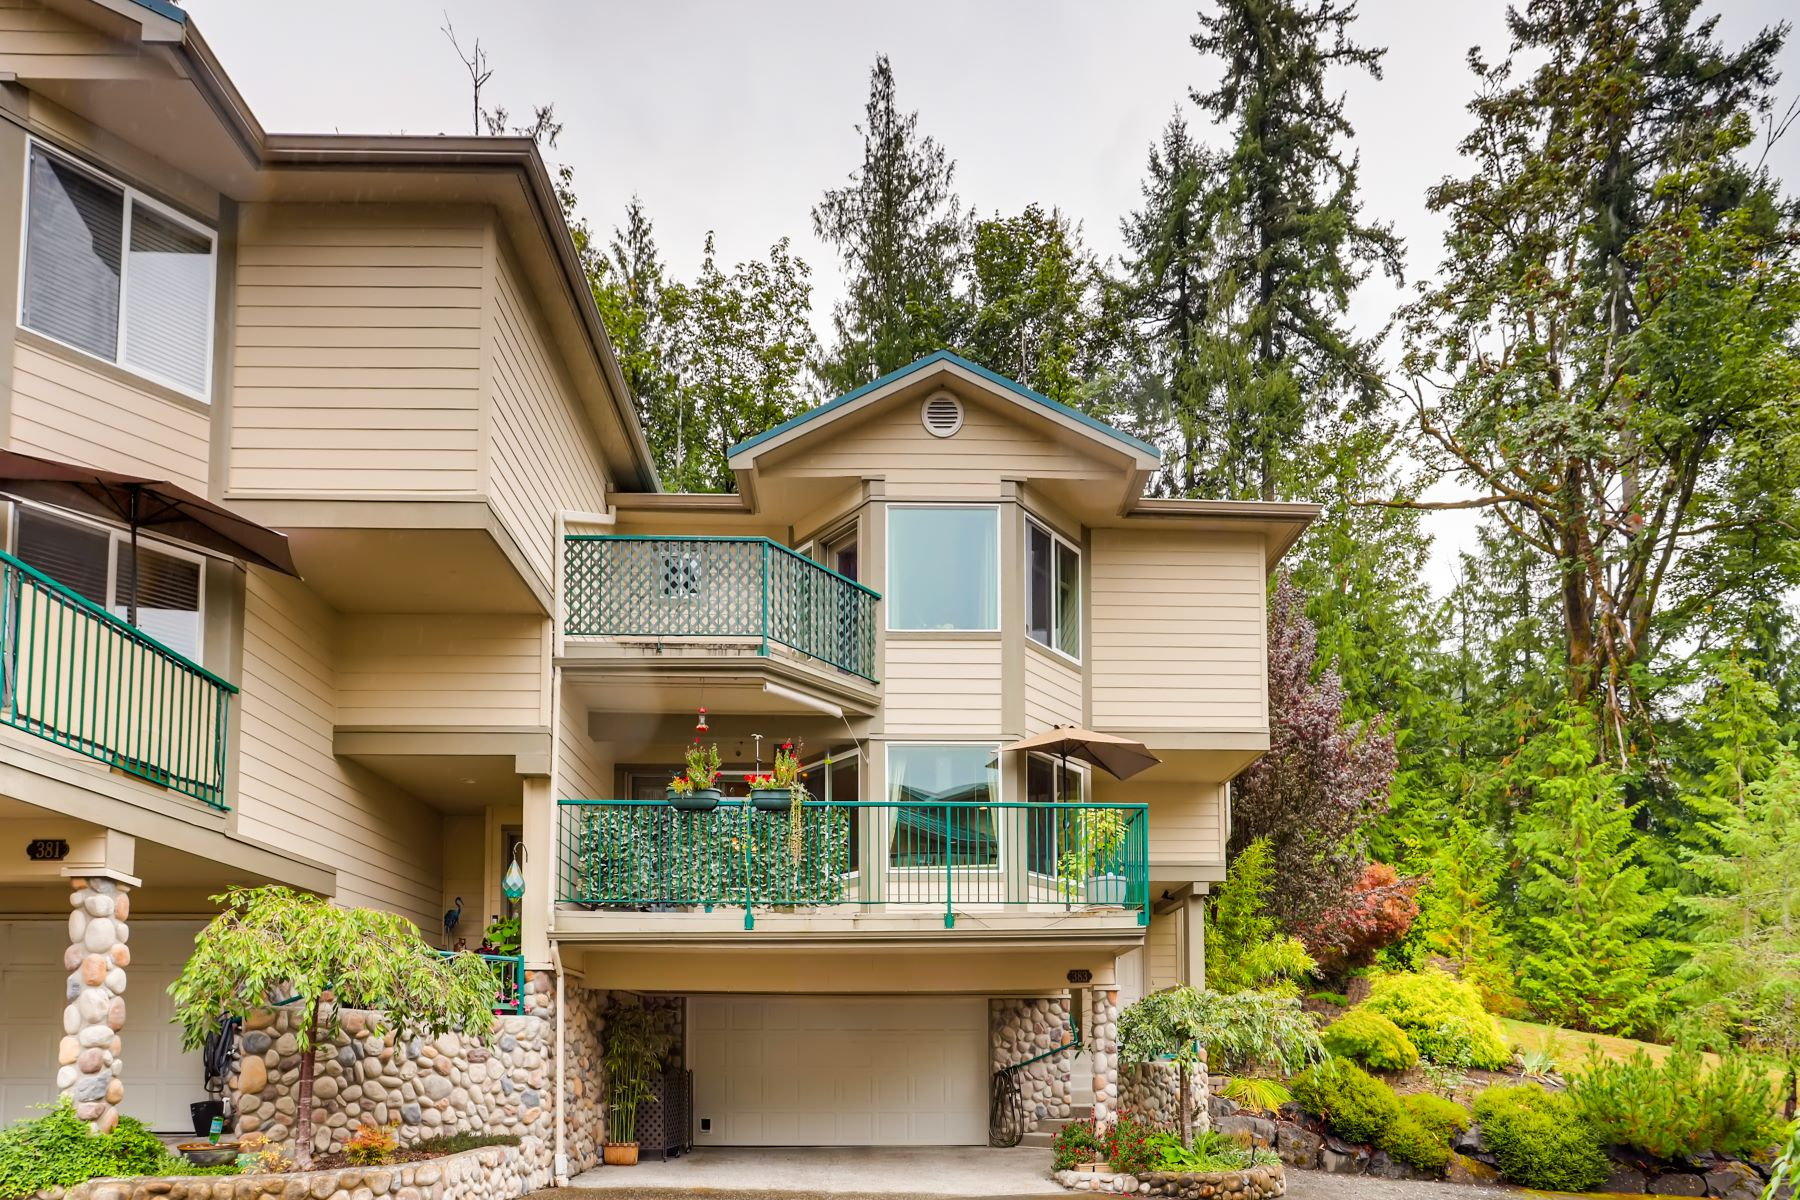 Condominiums for Sale at Squak Mountain Living 383 NW 12th Ave Issaquah, Washington 98027 United States